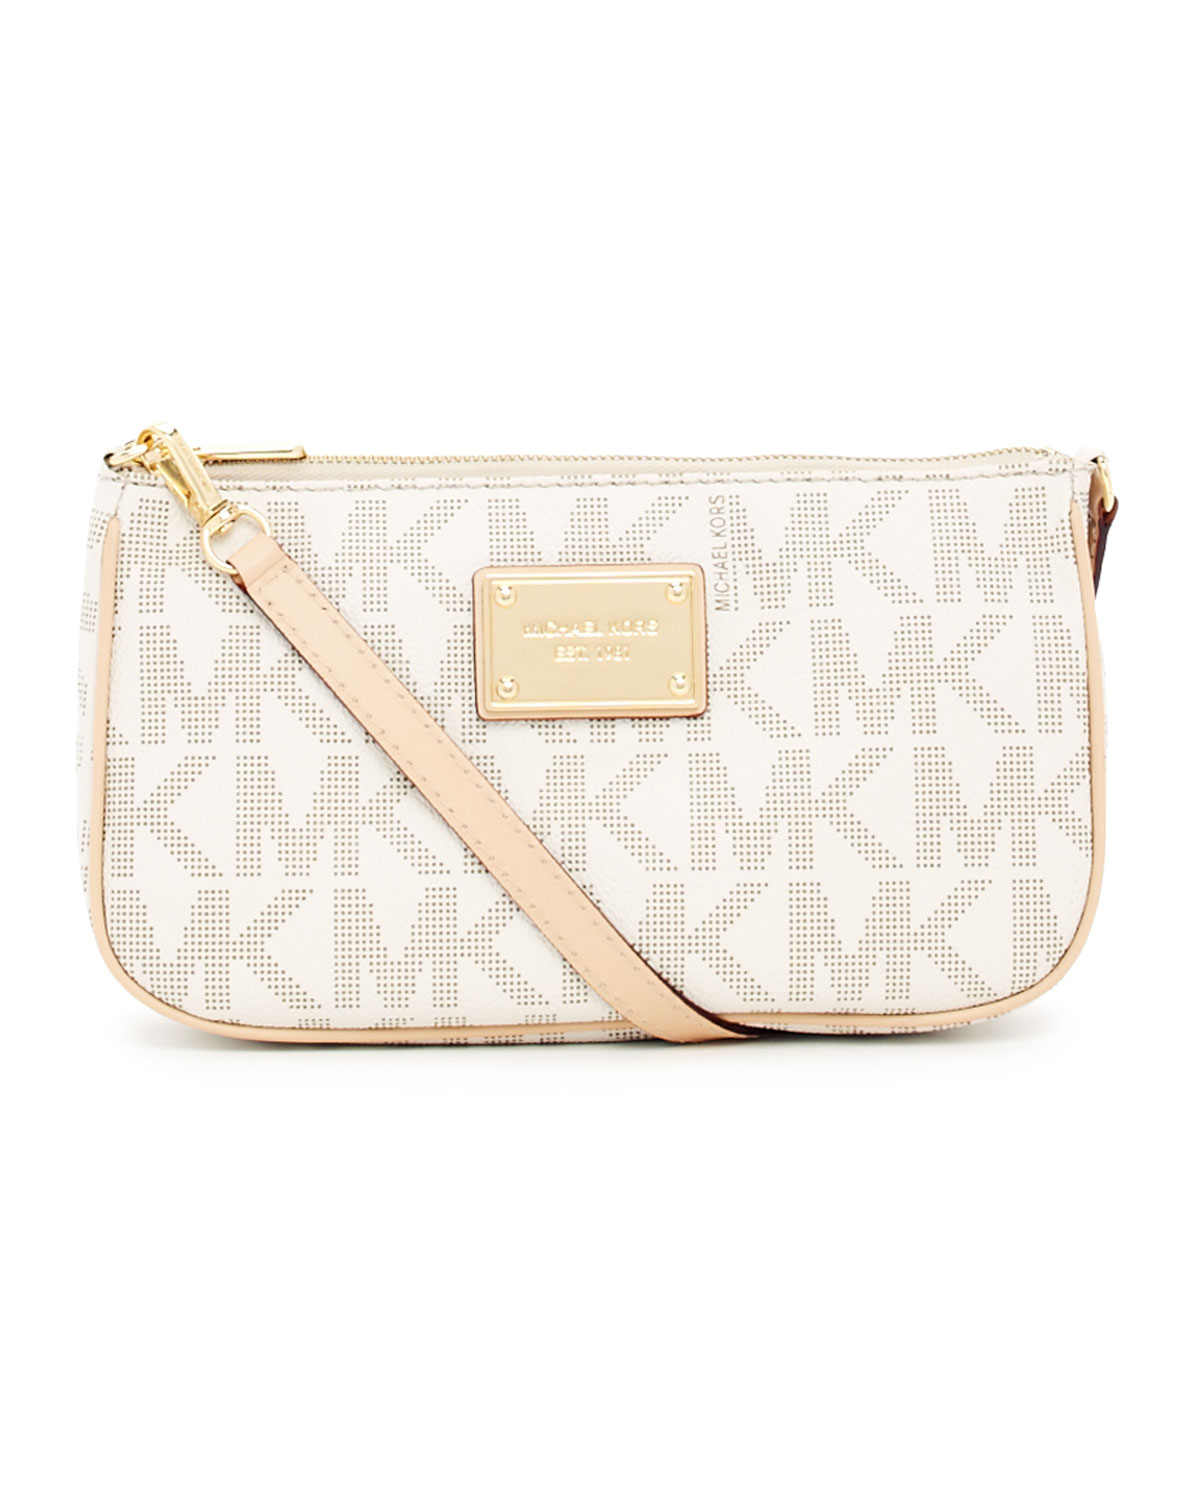 e394f00854a7 MICHAEL Michael Kors Jet Set Large Pouchette in White - Lyst